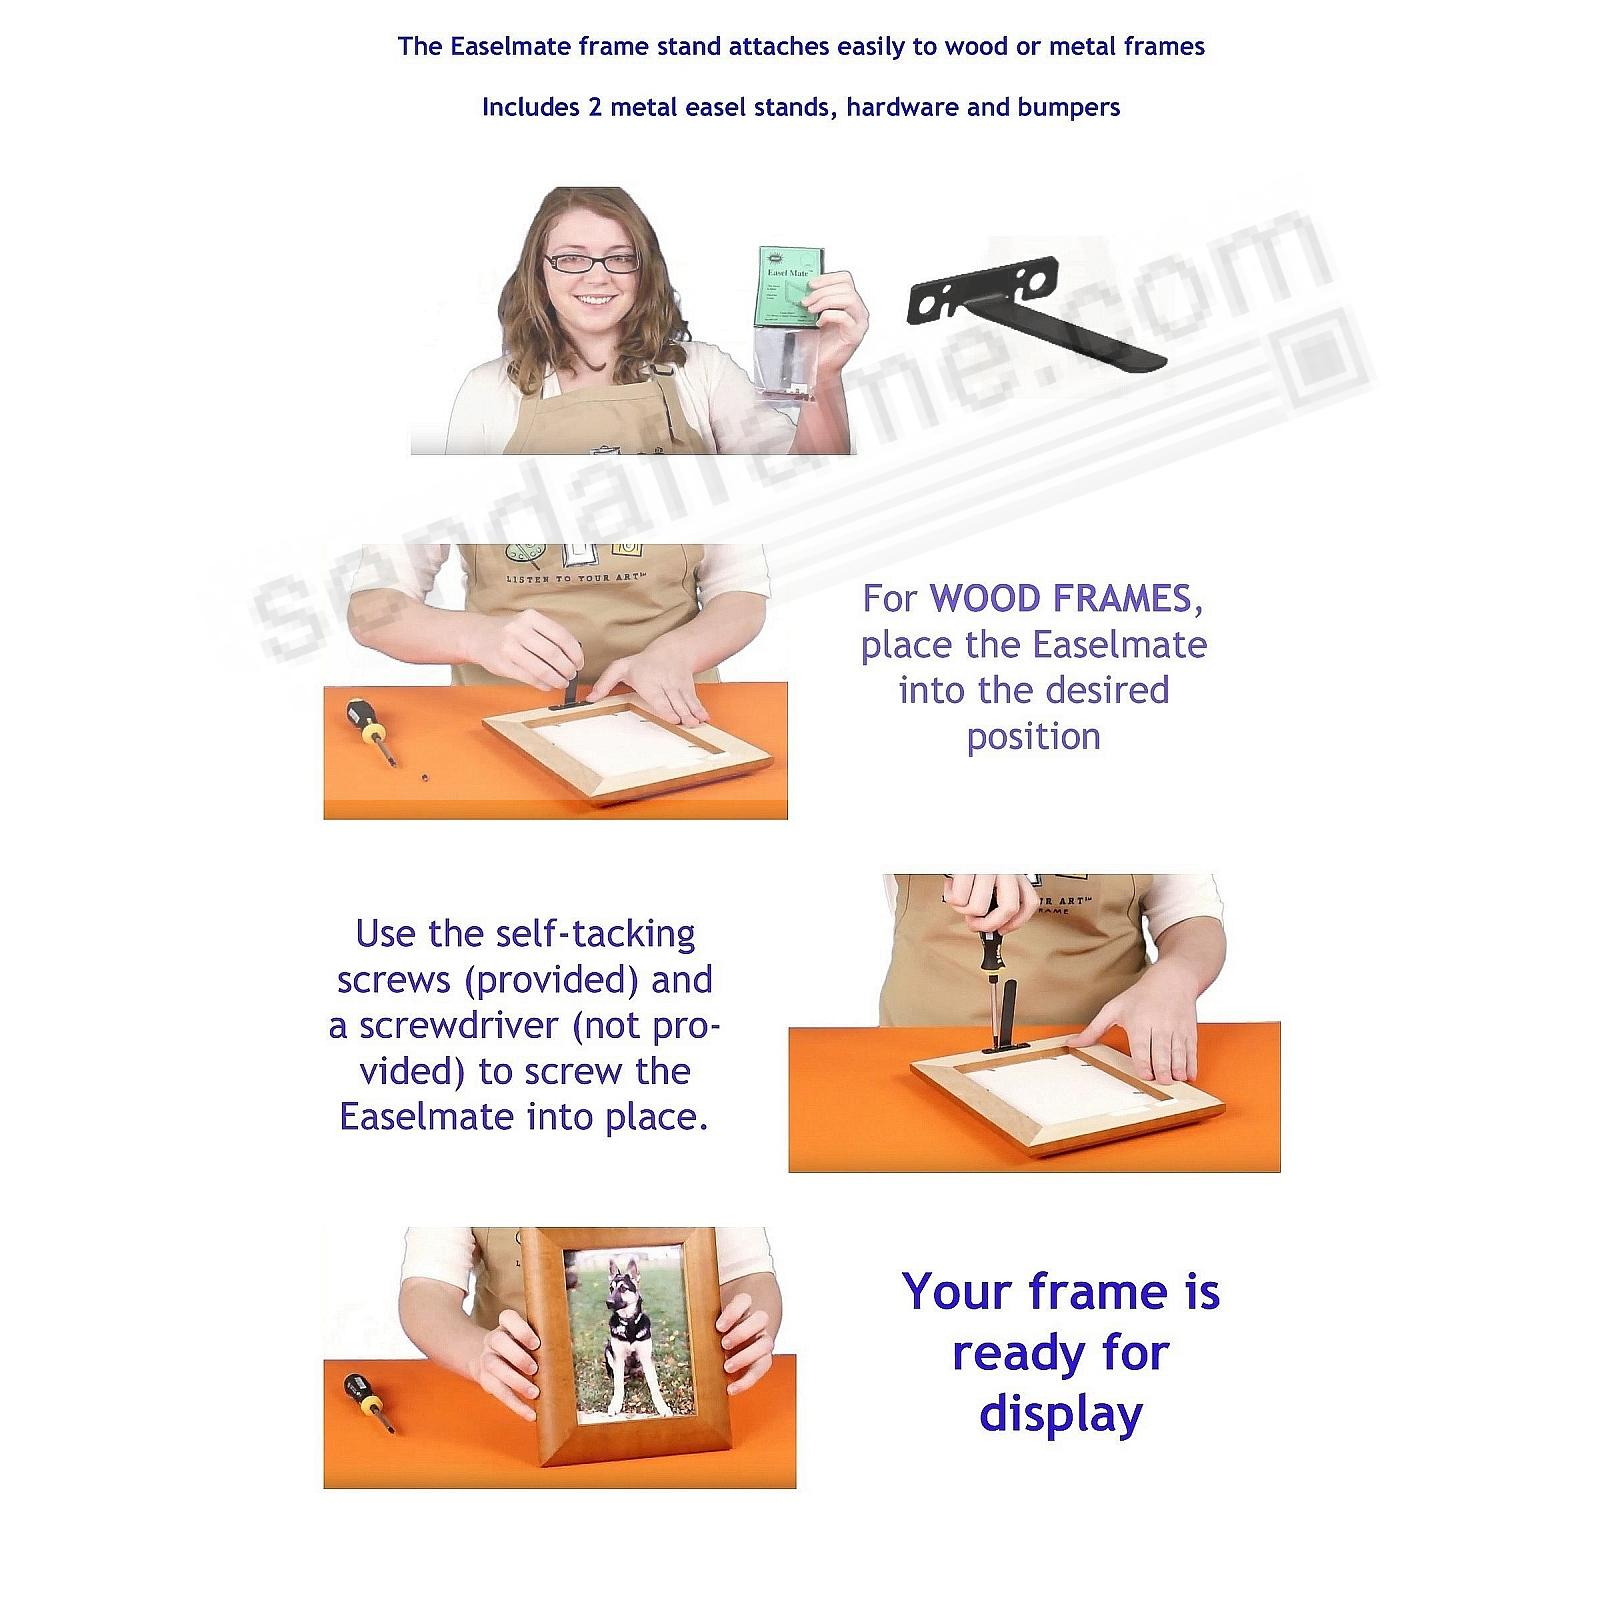 Wood Frame Setup Instructions